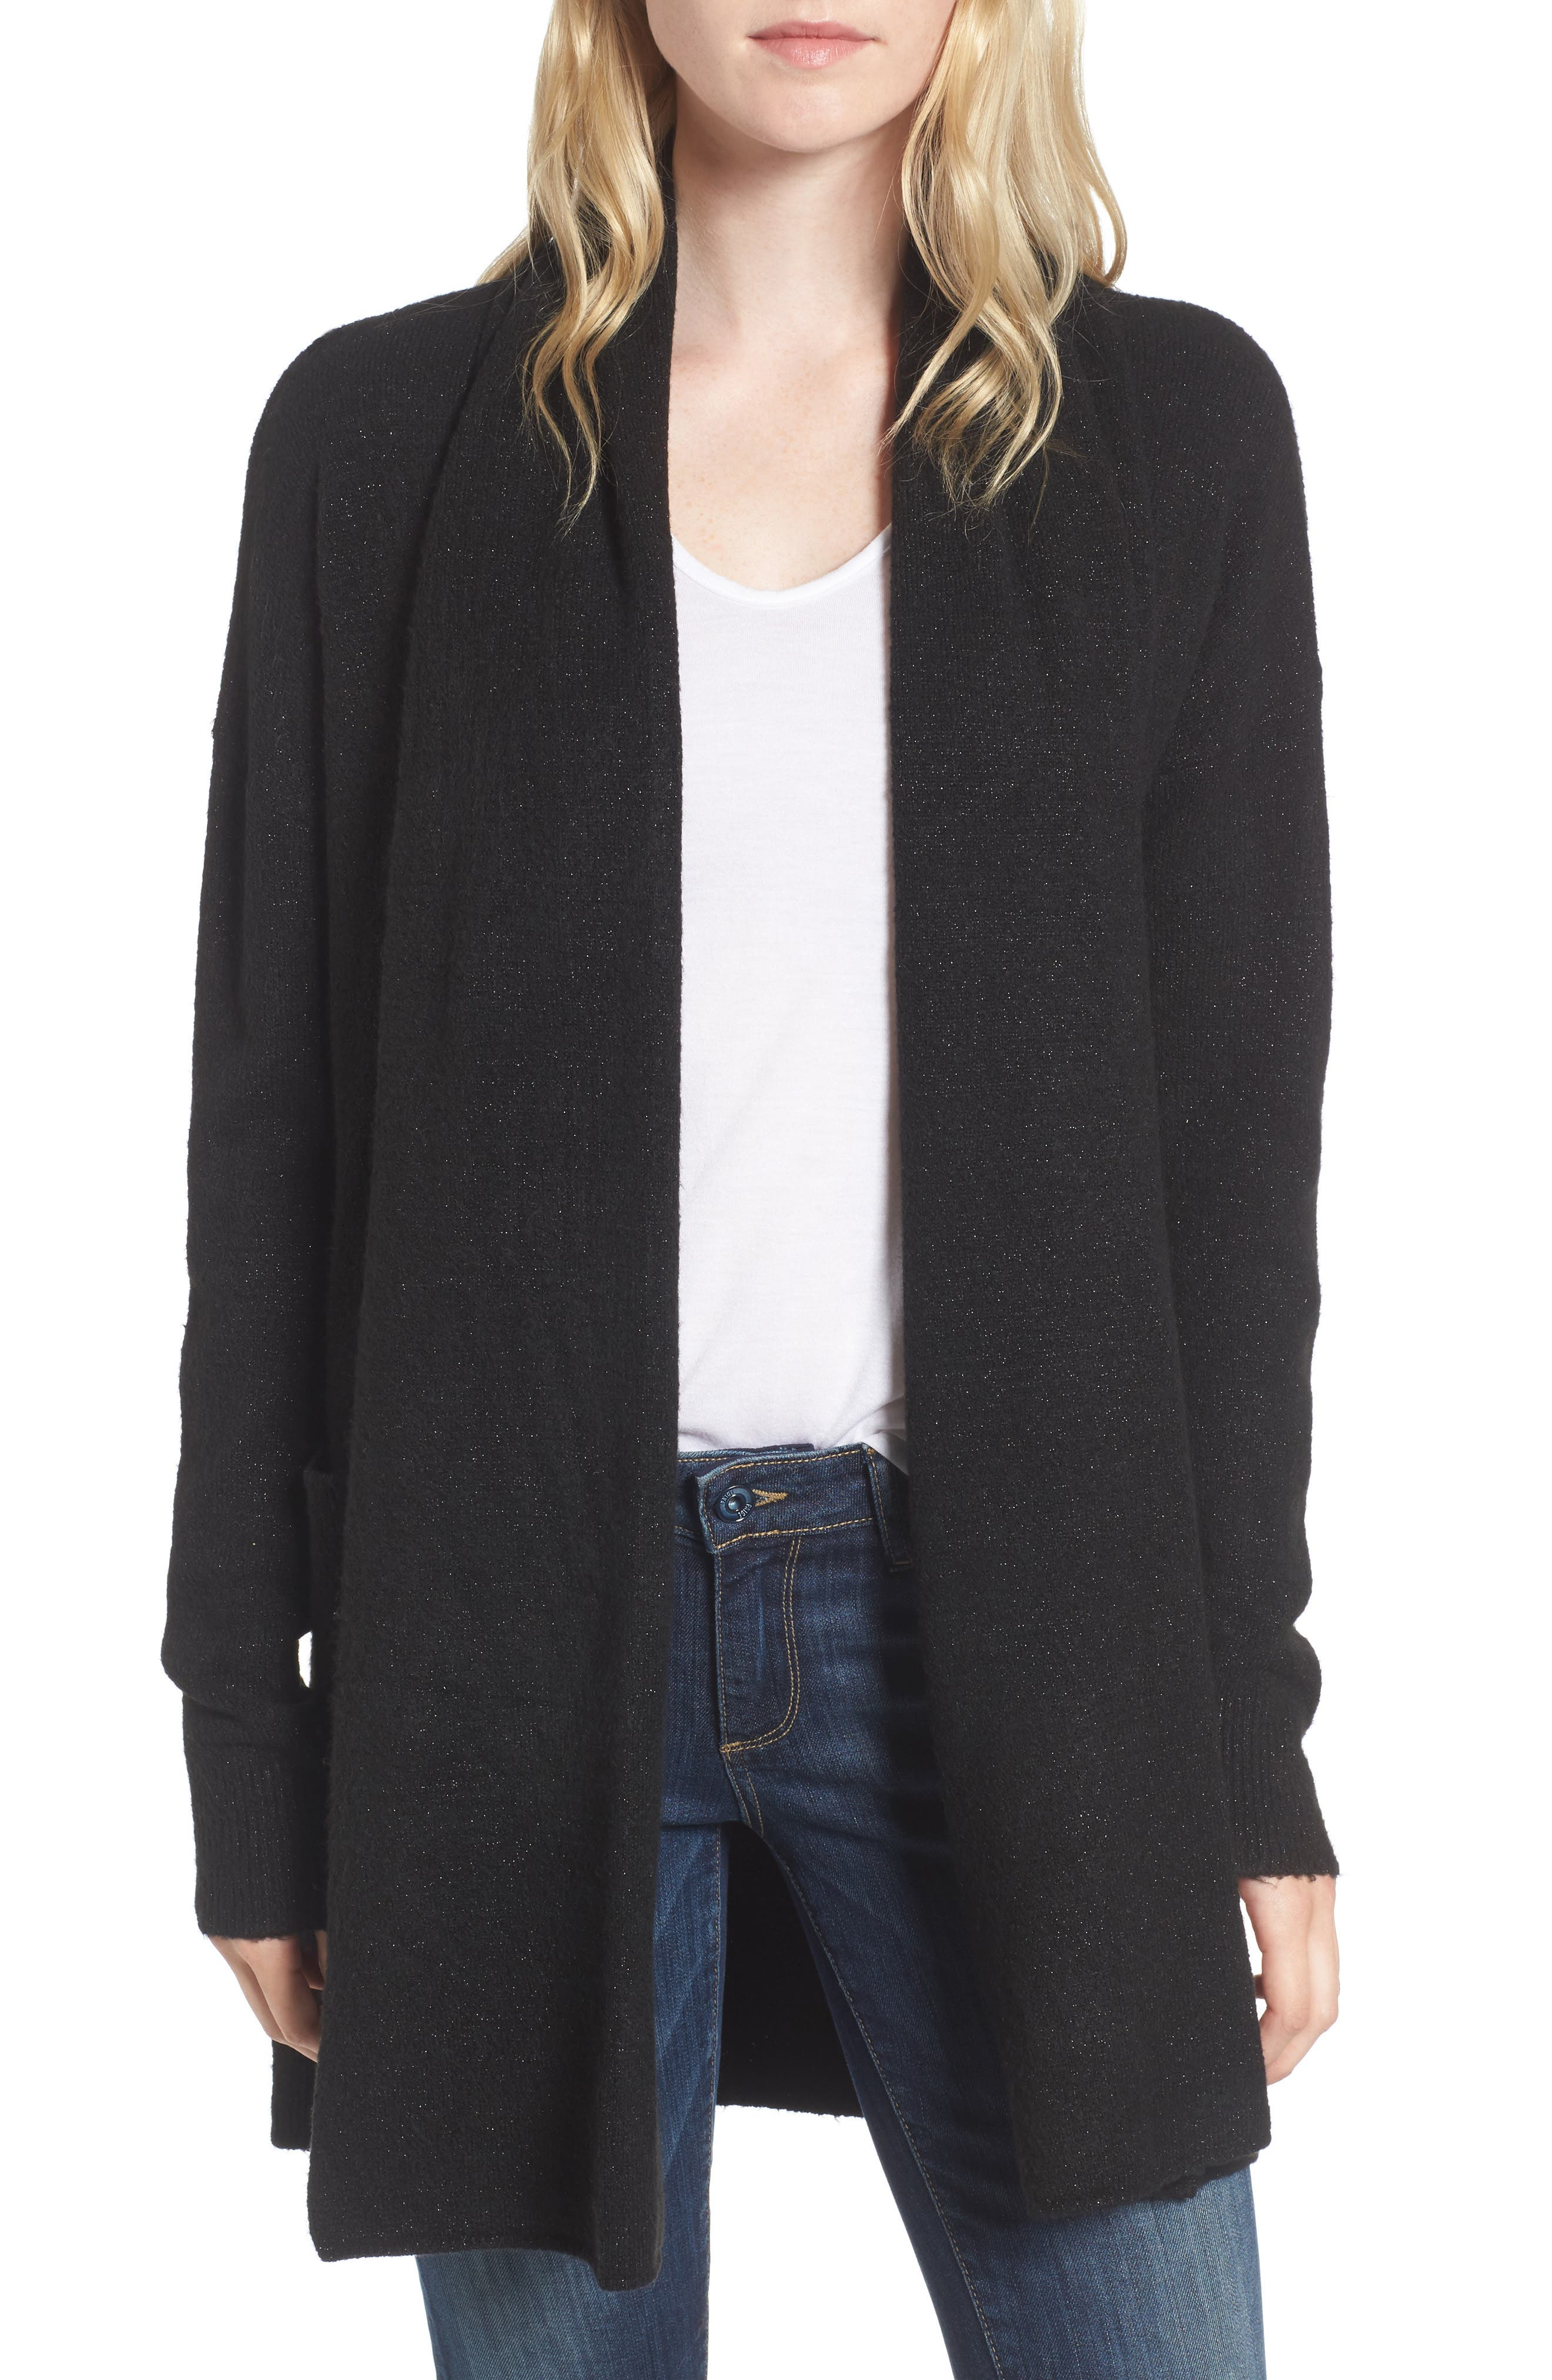 Main Image - Hinge Cardigan Sweater